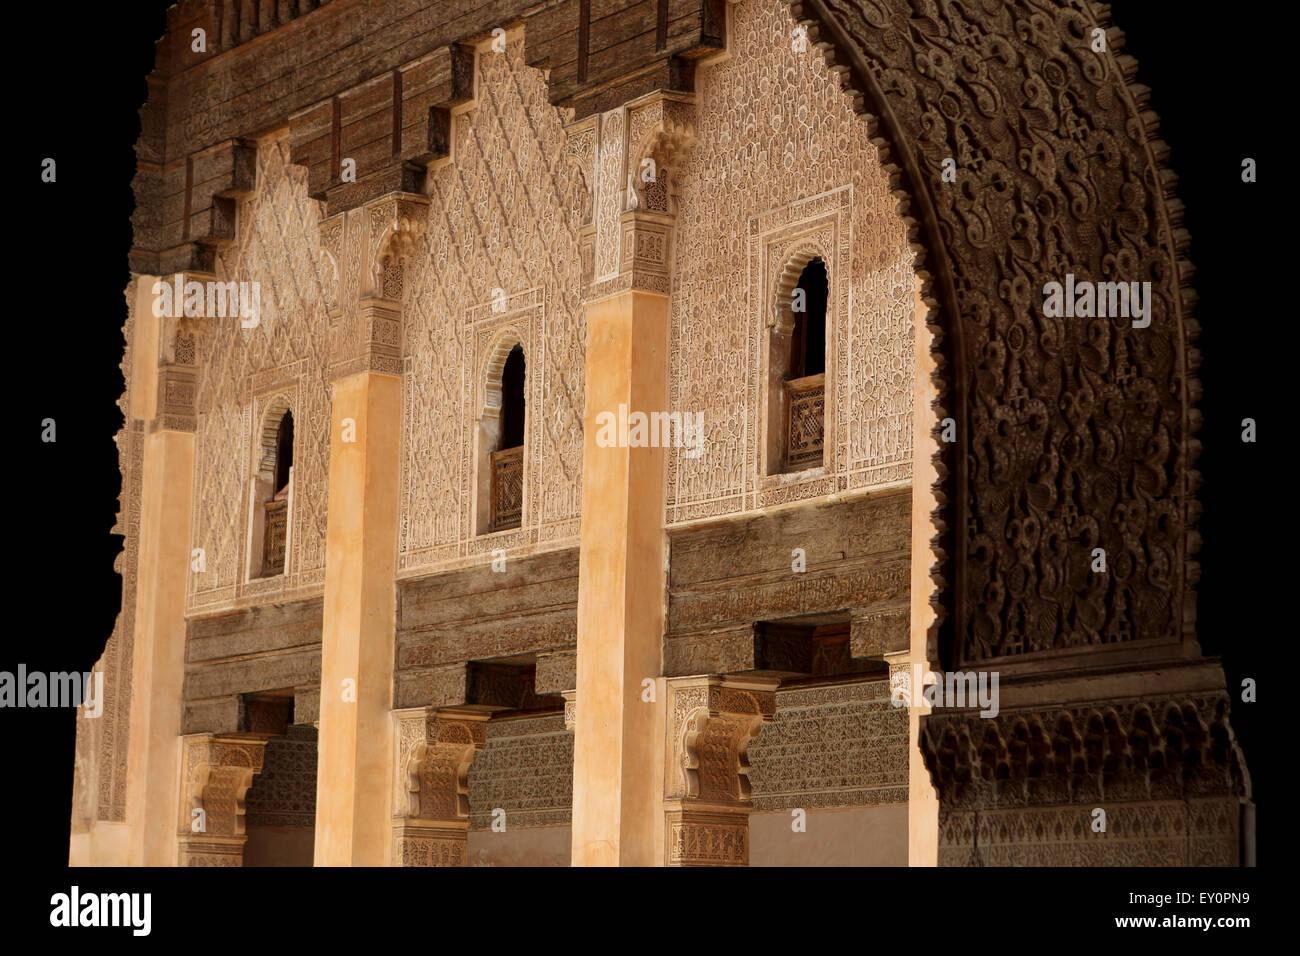 Richly detailed Arabesque stucco walls, at the Ben Youssef Madrasa, Marrakesh, Morocco - Stock Image